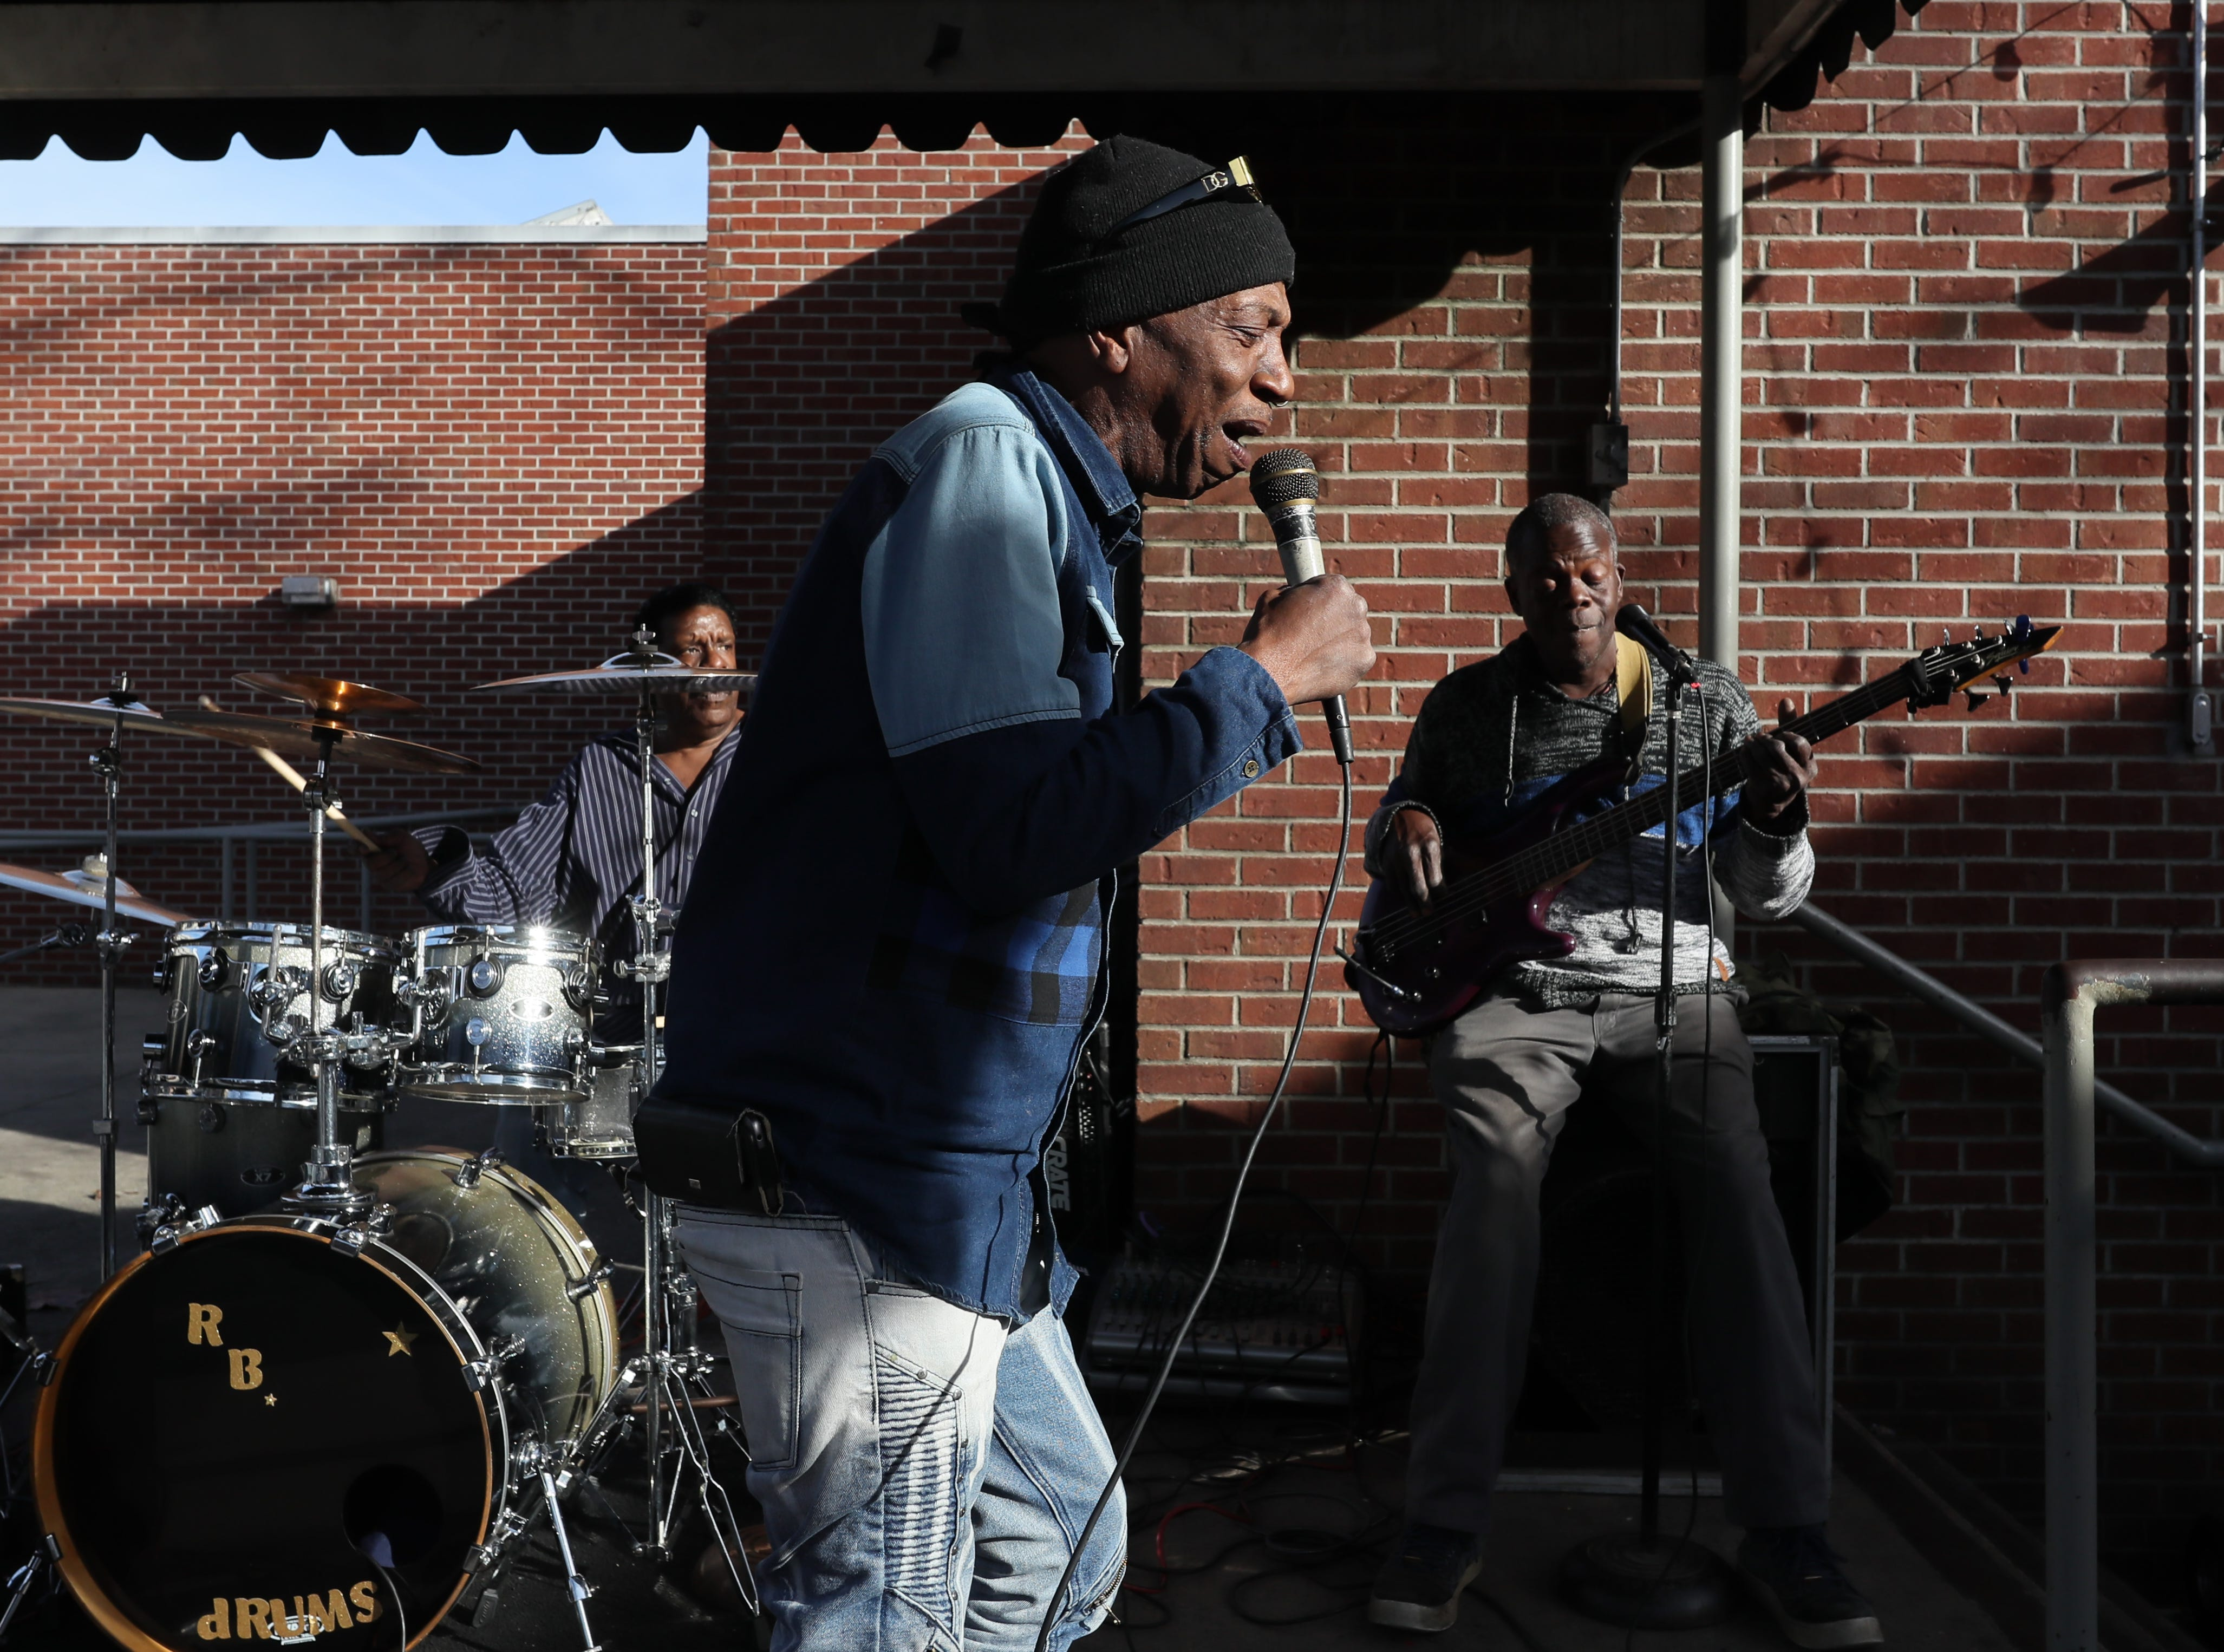 Smokey Joe Partee leads the WQBC band, or 'Wanna Quit But Can't, as they play off Beale Street at Handy Park on a warm winter afternoon Tuesday, Jan. 8, 2019. Temperatures for the day were in the mid-60's, ahead of the coming cool front in store for the remainder of the week.